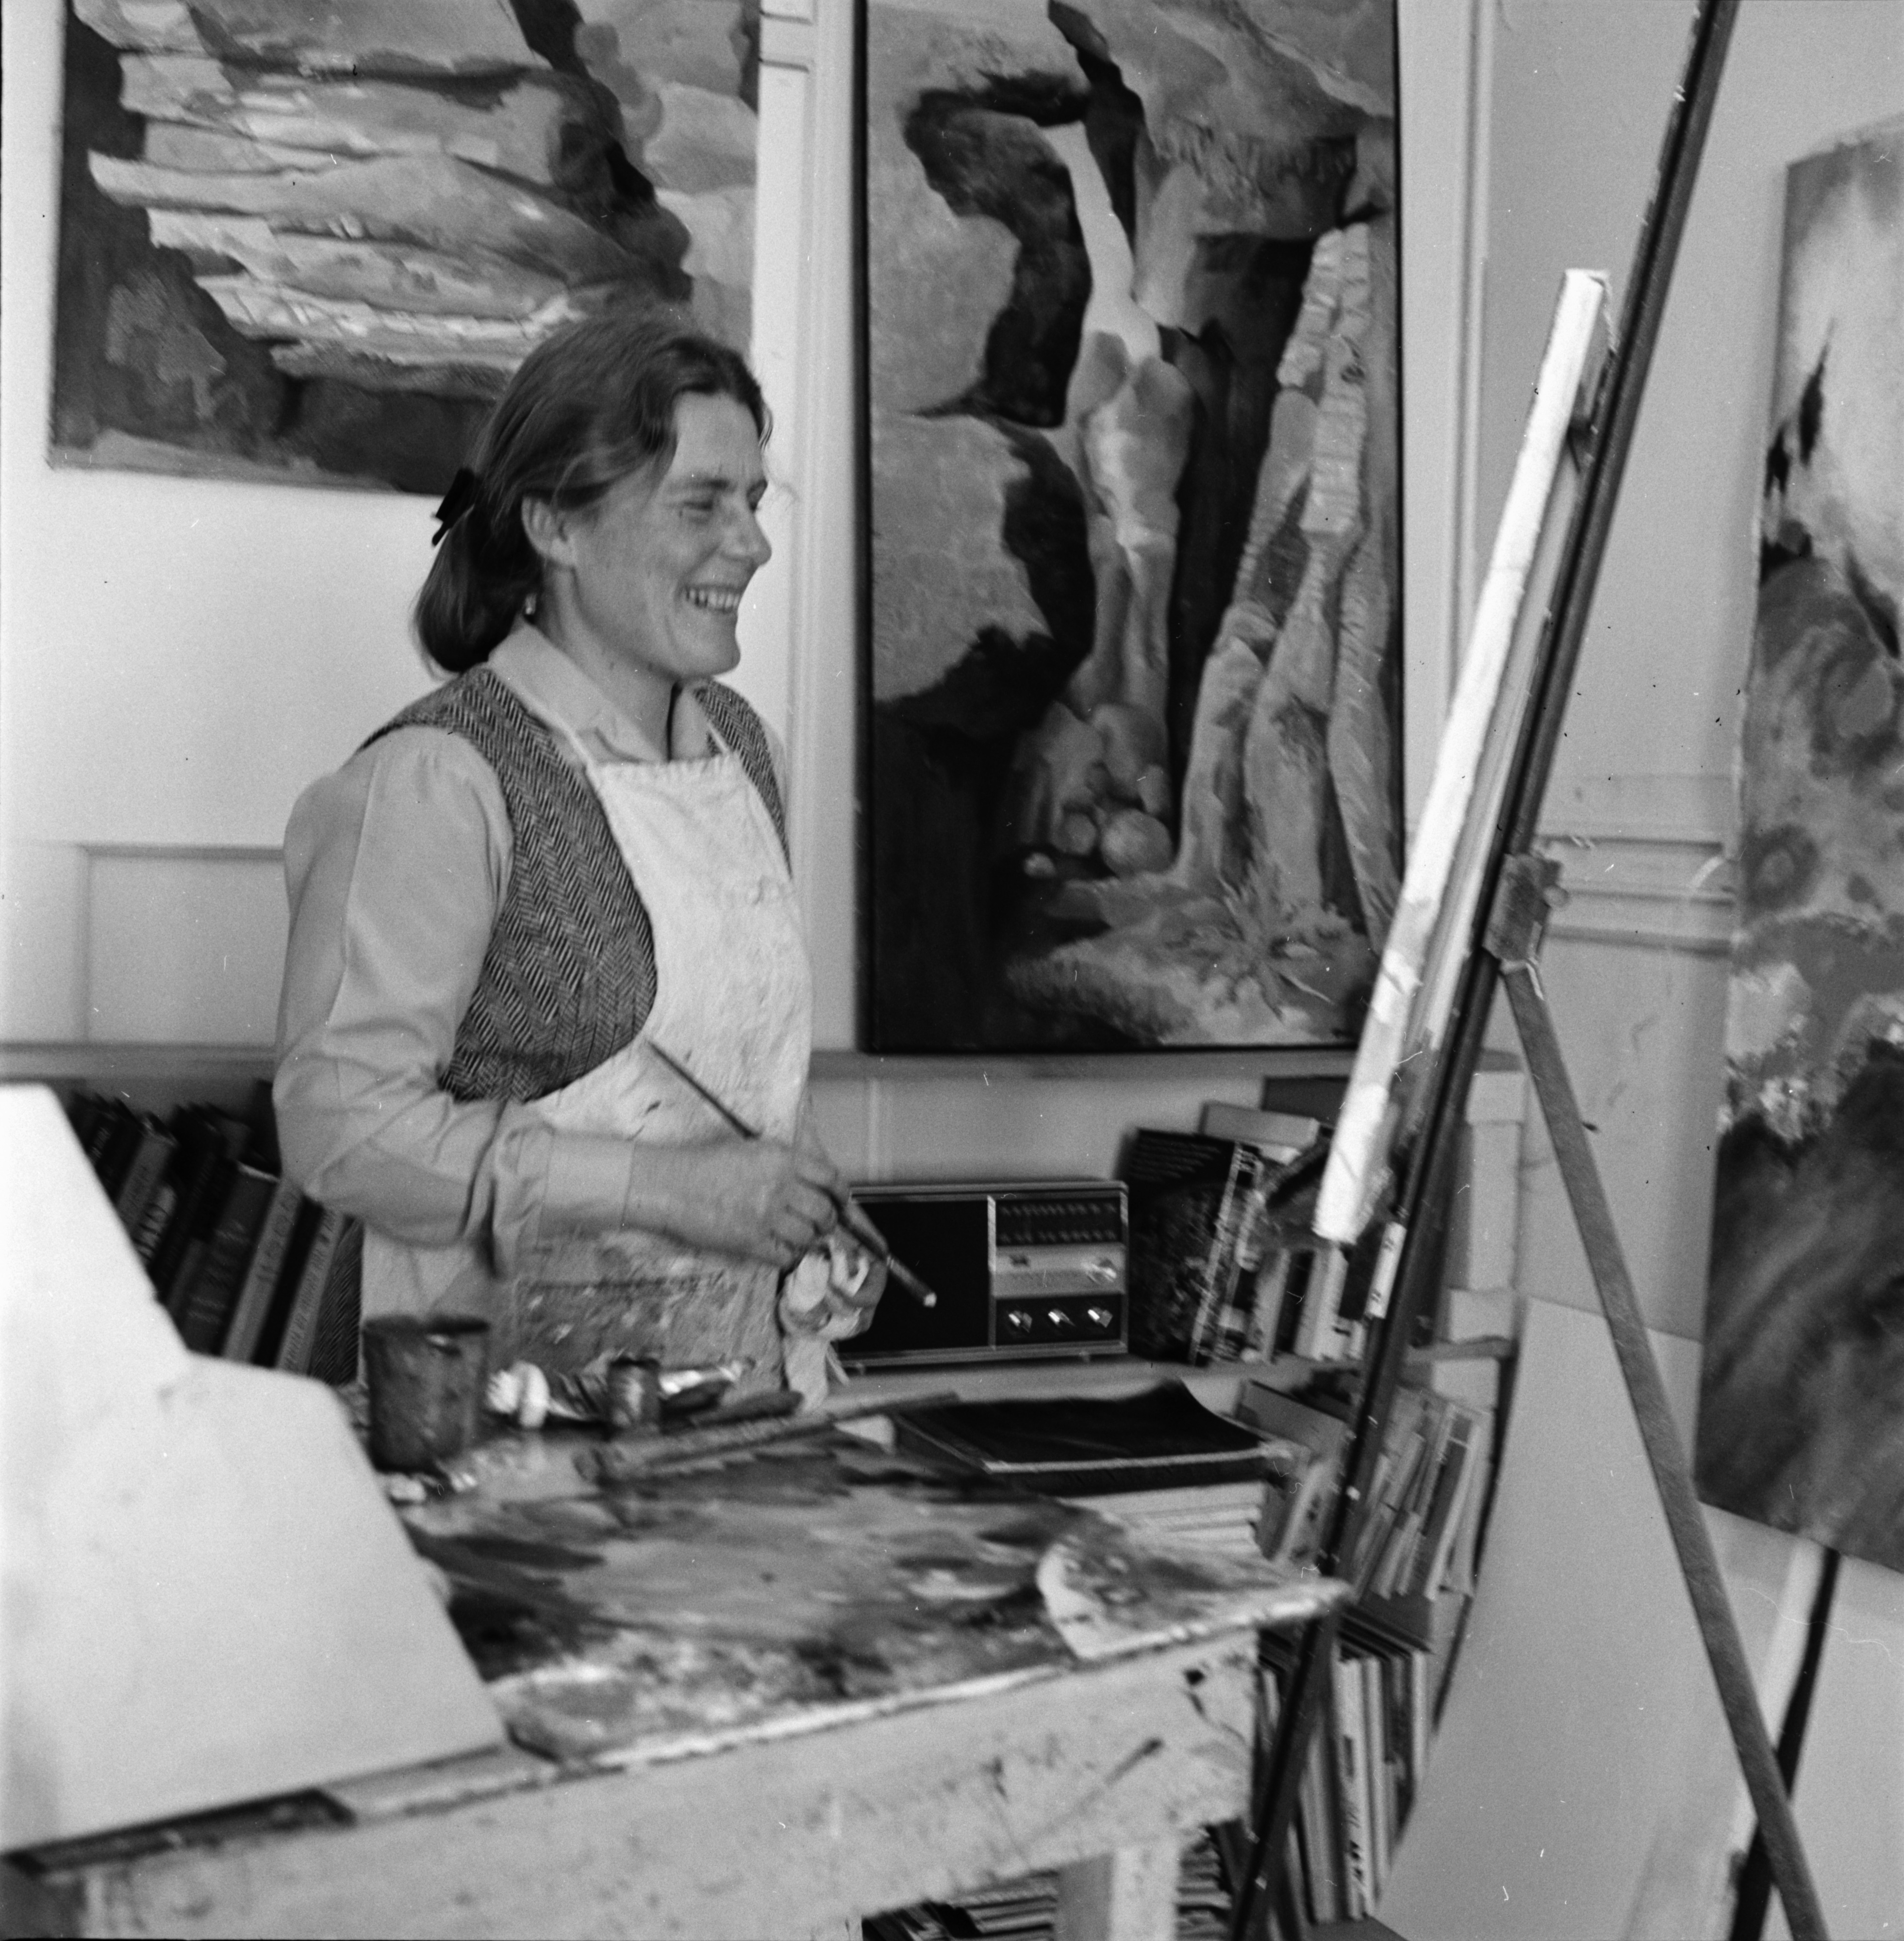 Artist Alice Crawford At Work, February 1969 image